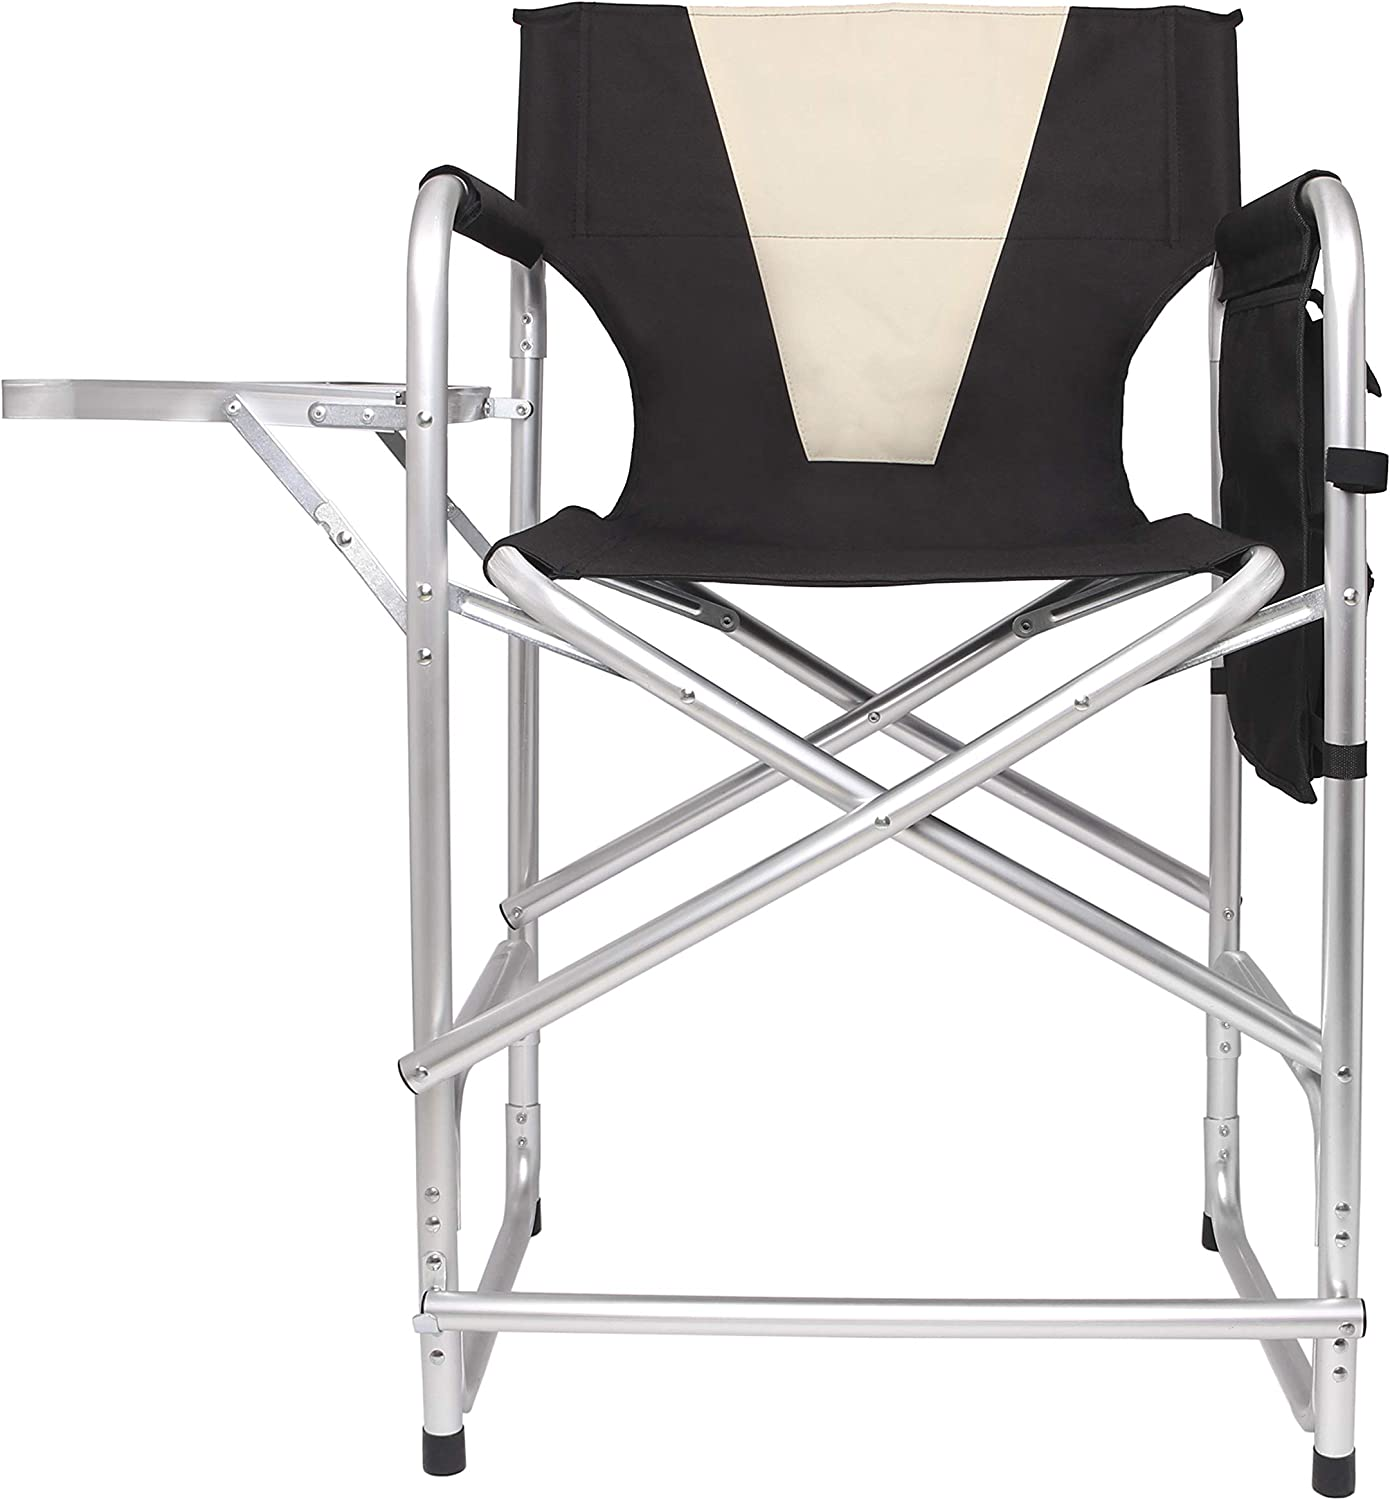 "Tall Directors Folding Chair Bar Height Director Camping Chair Lightweight Aluminum Frame Makeup Artist Chair with Armrest Side Table, Storage Bag, Footrest-Supports 300lbs, 24"" Seat Height"